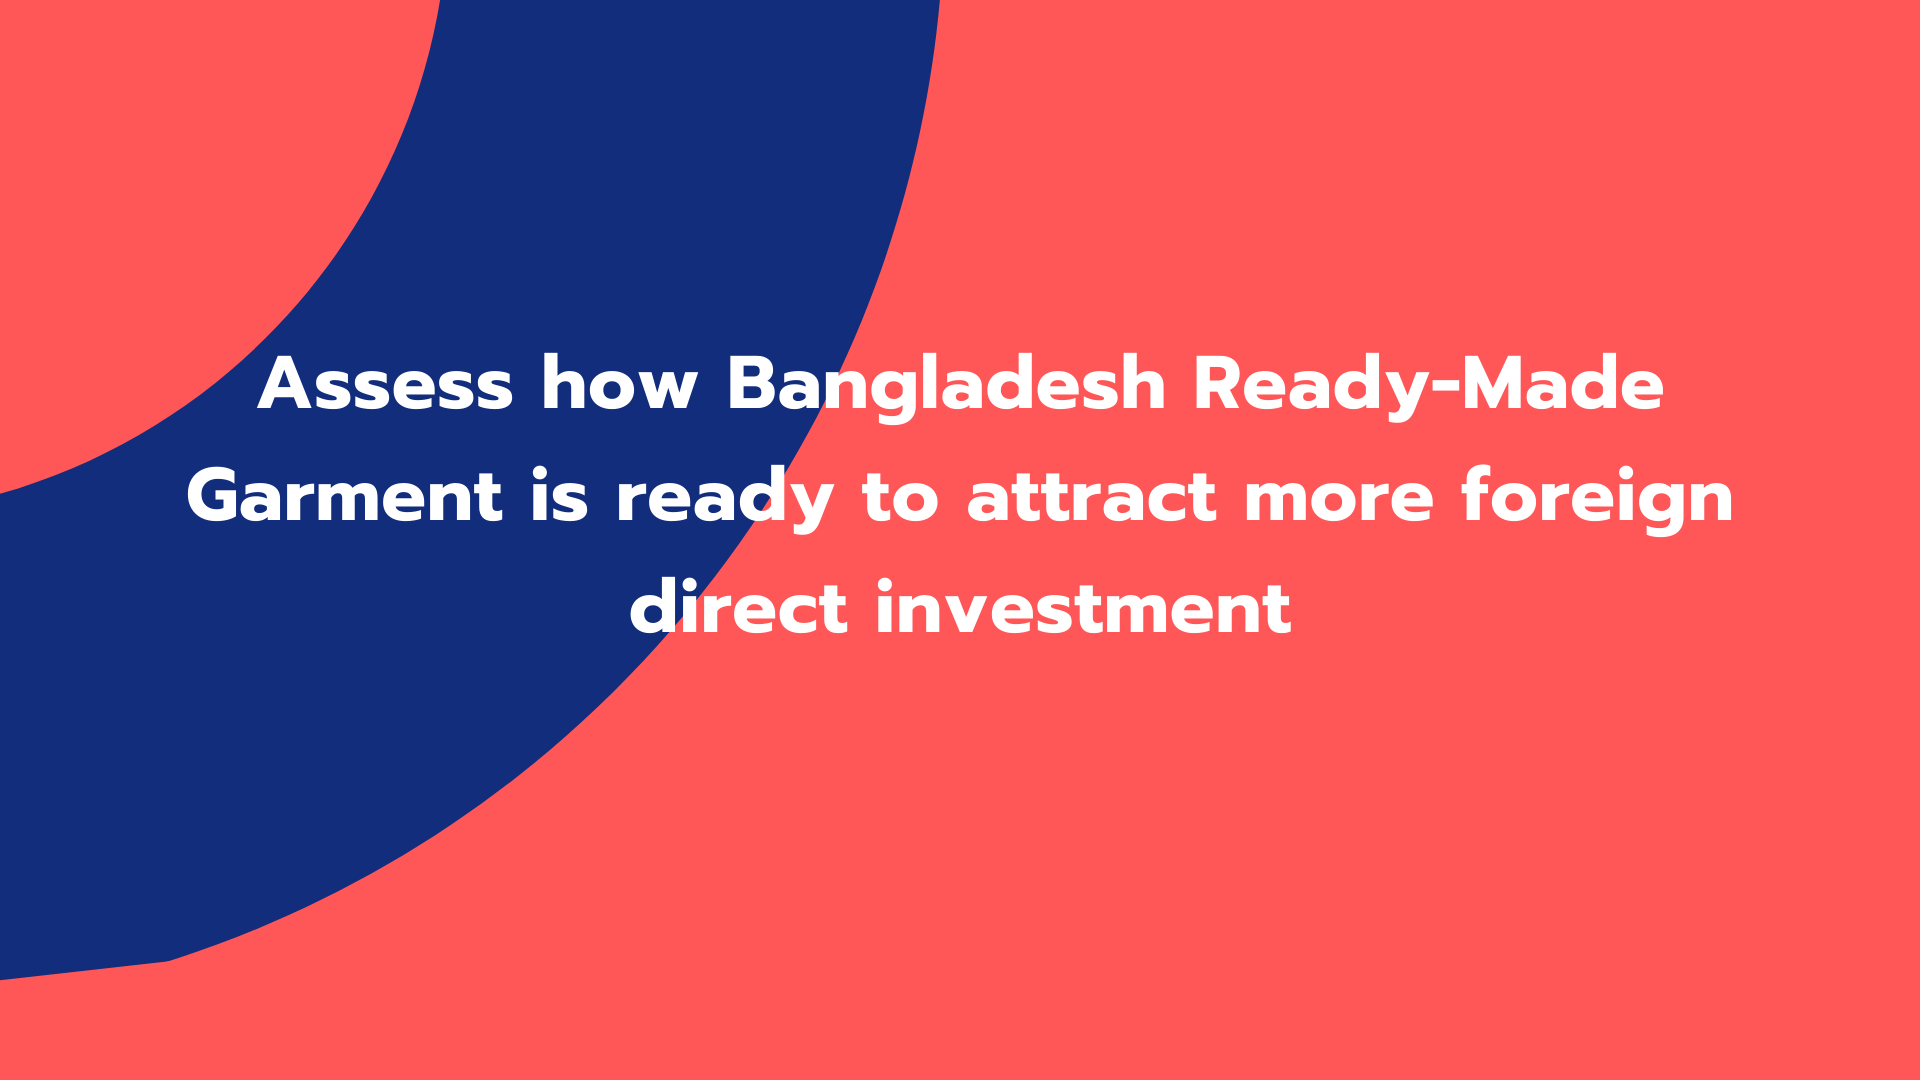 Assess how Bangladesh Ready-Made Garment is ready to attract more foreign direct investment